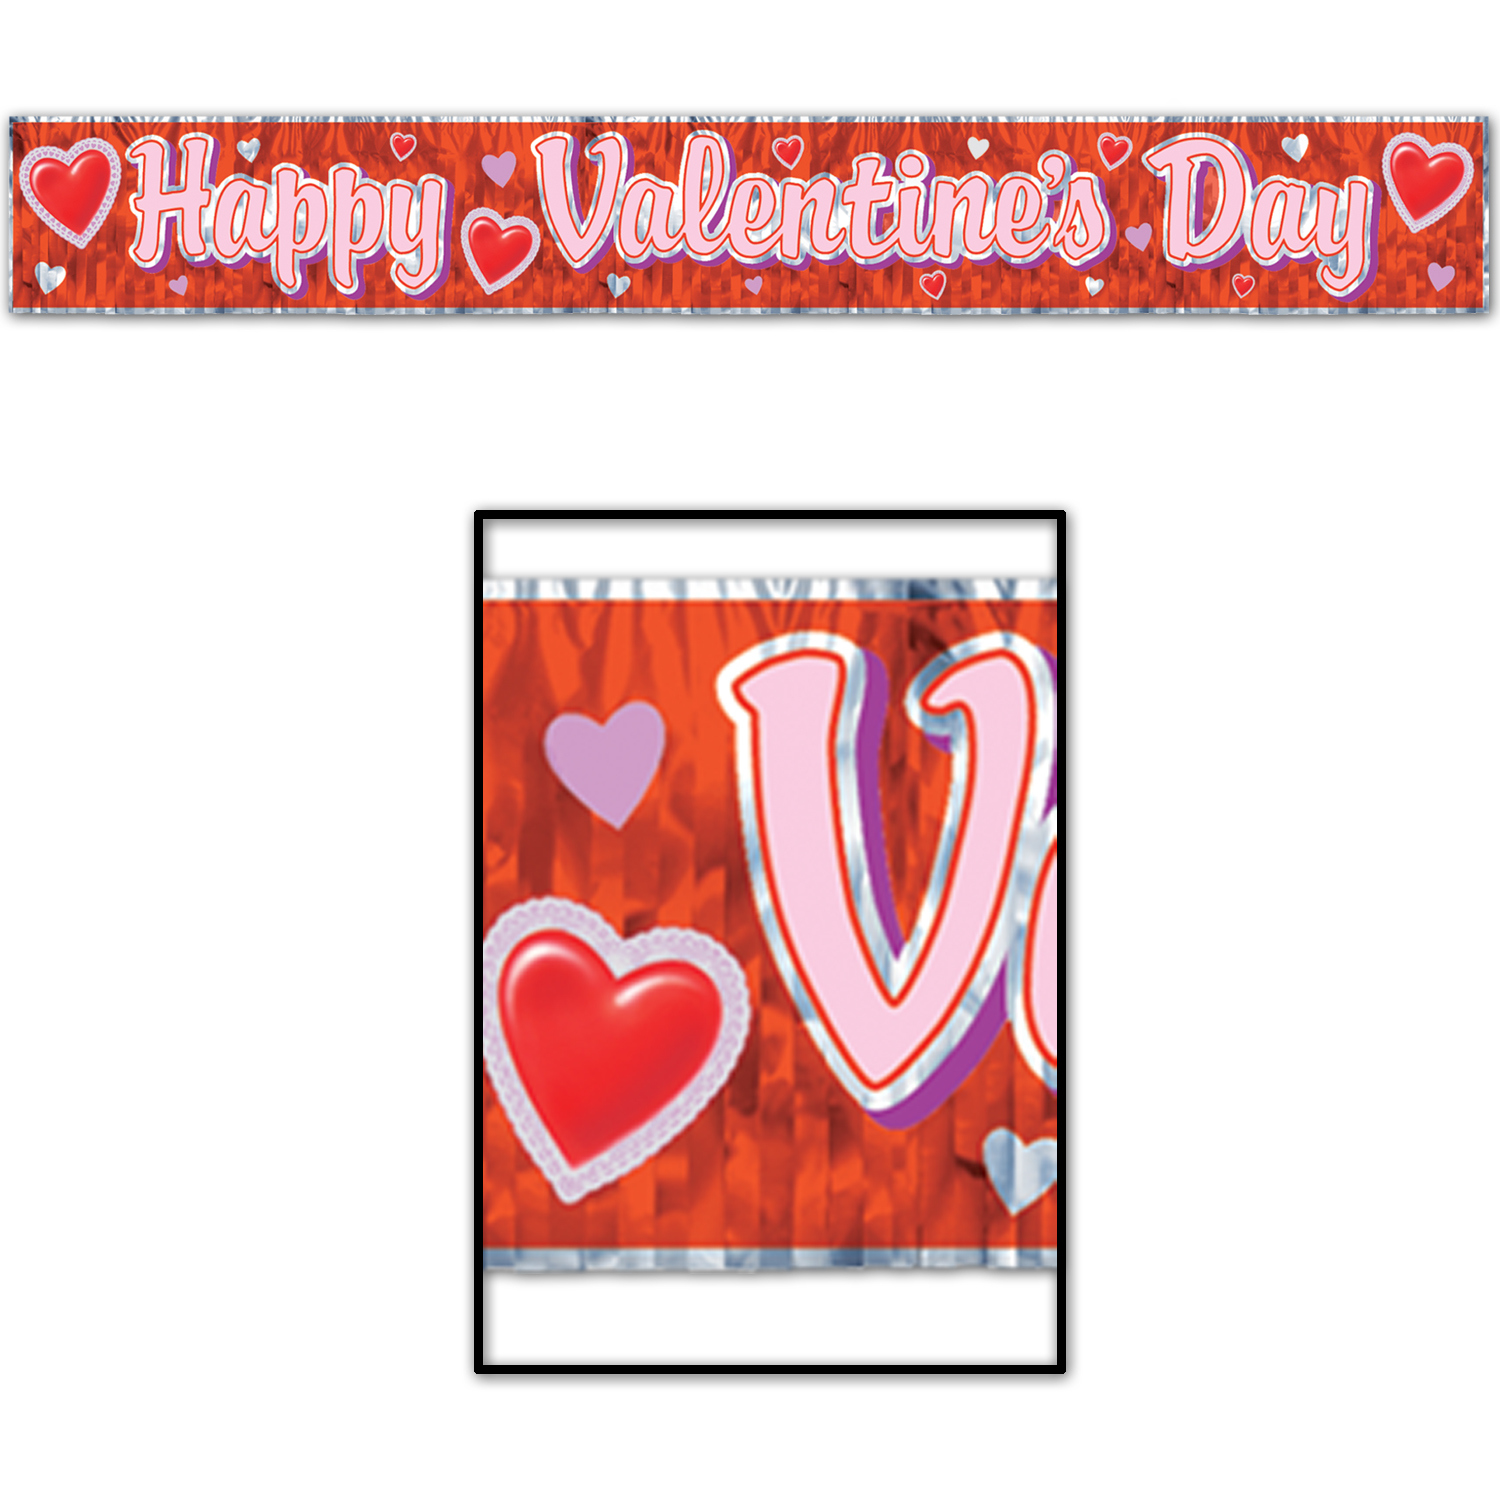 Happy Valentines Day Fringe Banner (Pack of 12) Happy Valentines Day Fringe Banner, valentines day, decoration, banner, wholesale, inexpensive, bulk